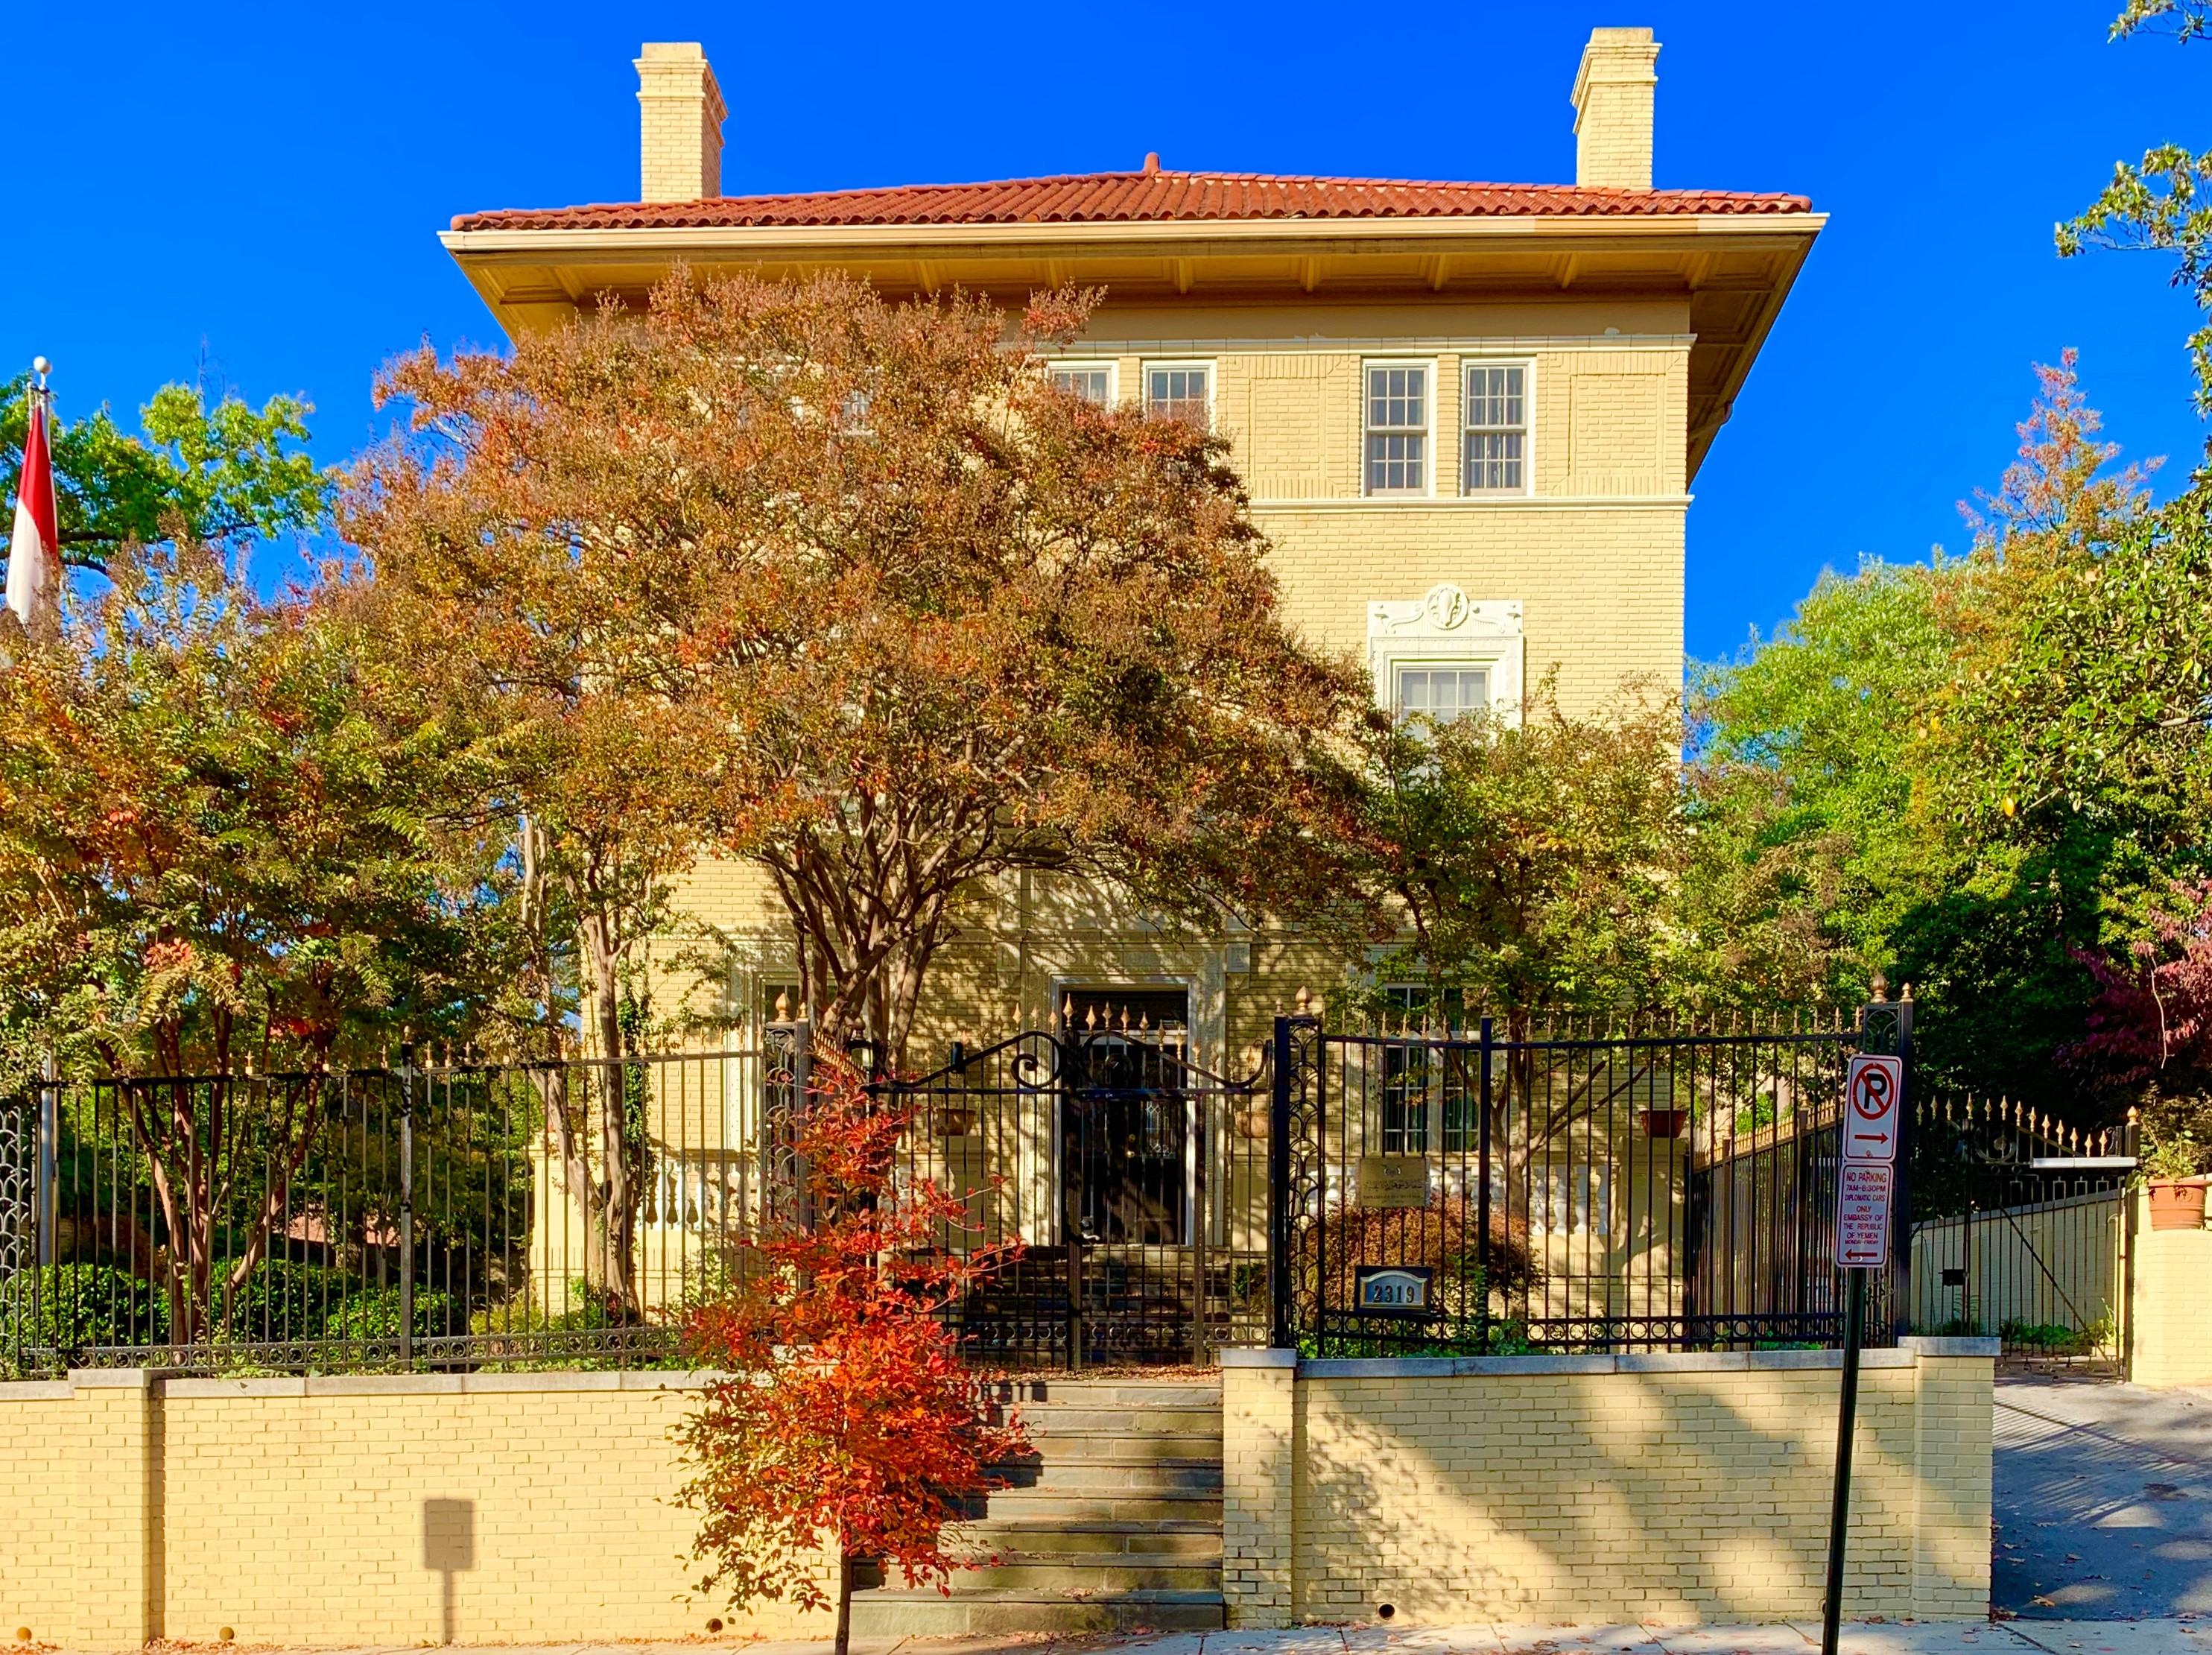 Real Estate & Homes For Sale Near The Embassy of Yemen in Washington, DC. Artyom Shmatko Luxury Real Estate Agent